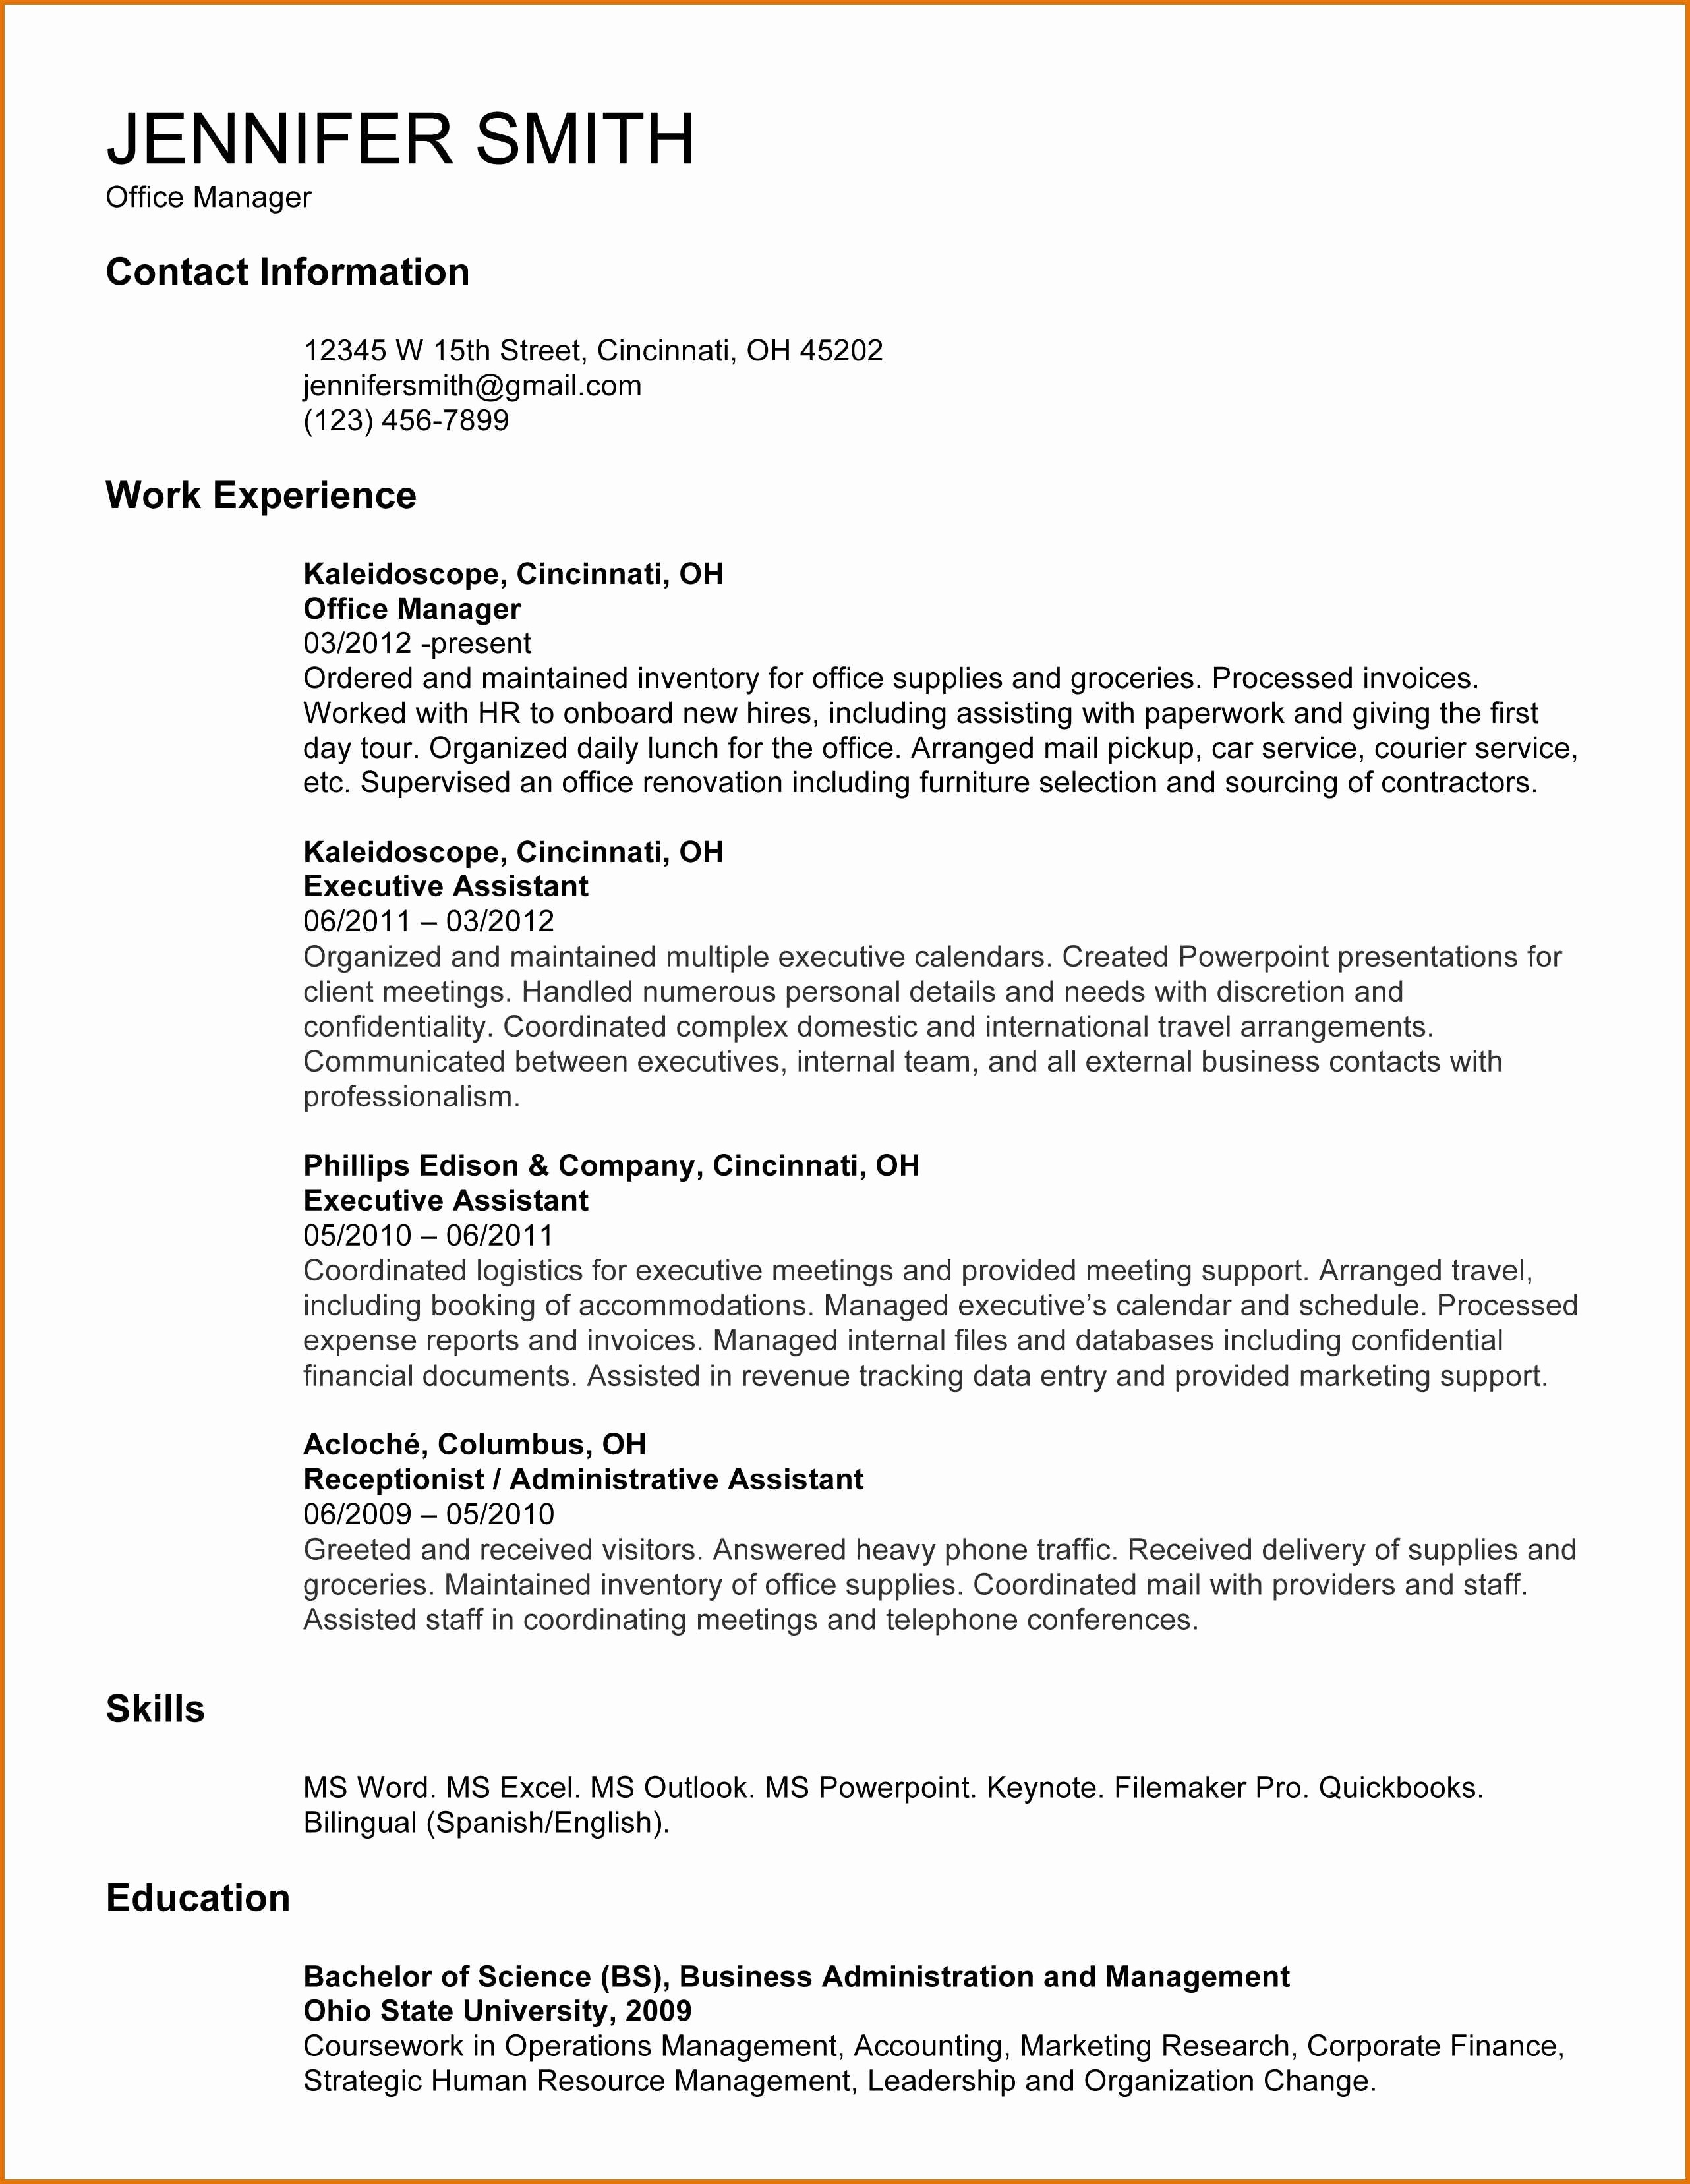 New Hire Letter Template - Cover Letter for Portfolio Ficer Refrence Sponsorship Levels